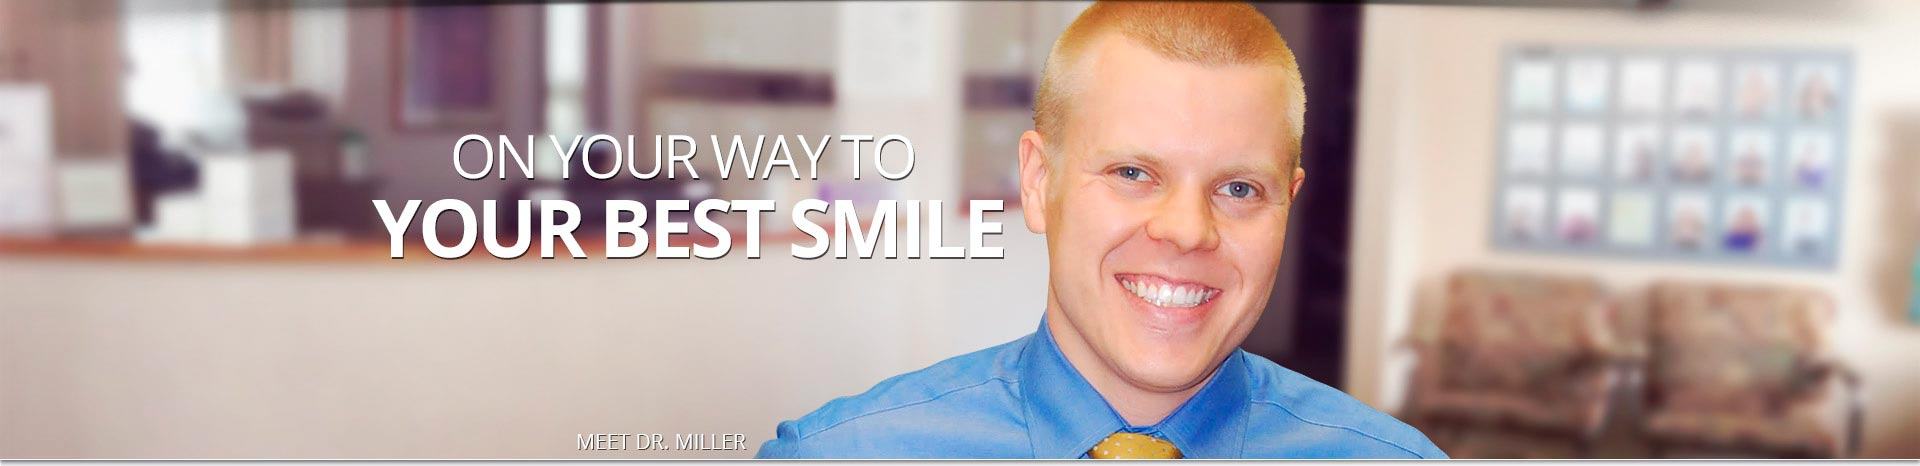 Keene-Orthodontic-Specialists-Meet-Dr-Miller2-1920